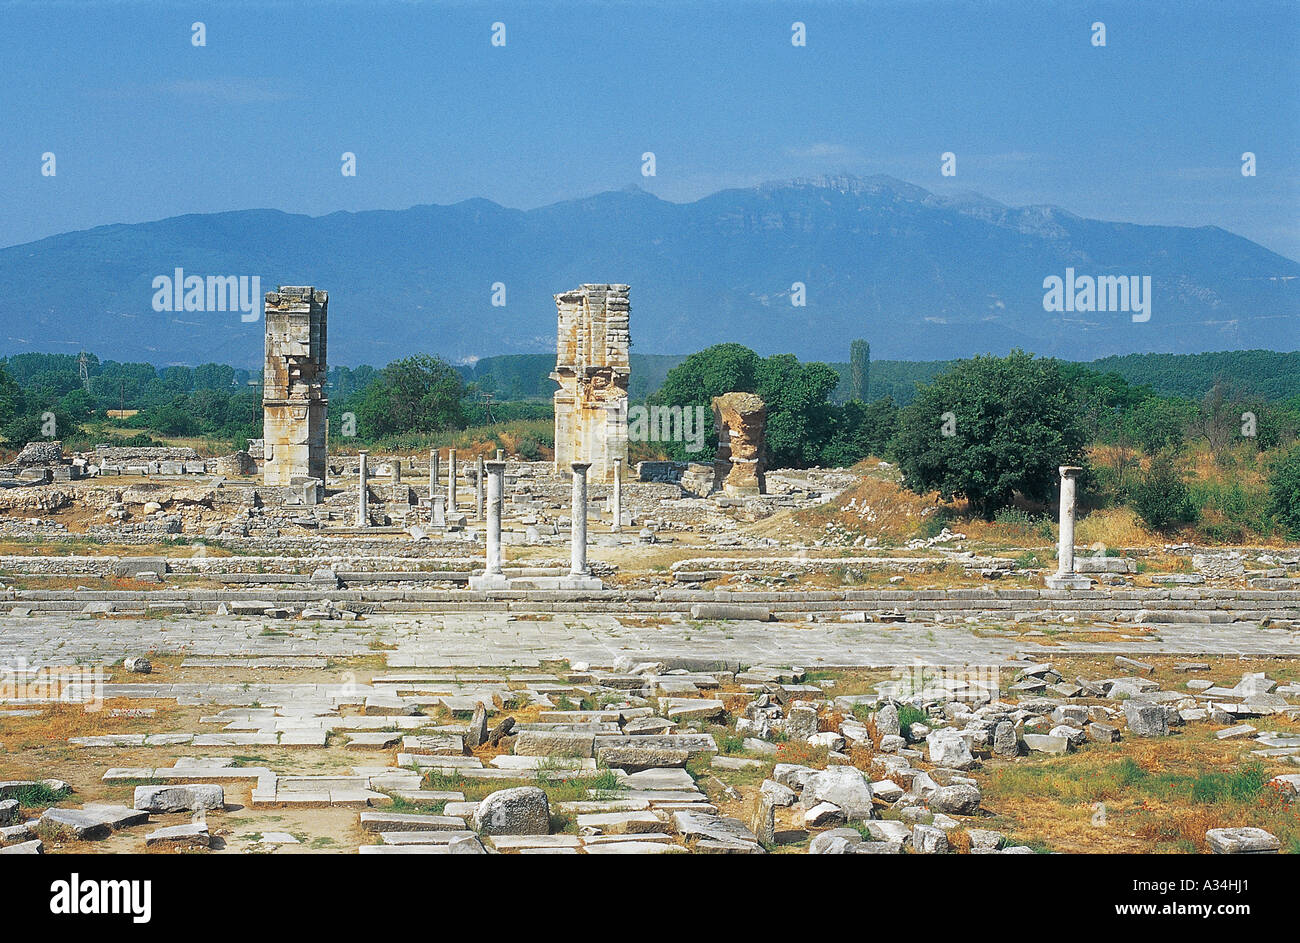 Ancient ruins of the Greek-Roman civilization - Stock Image